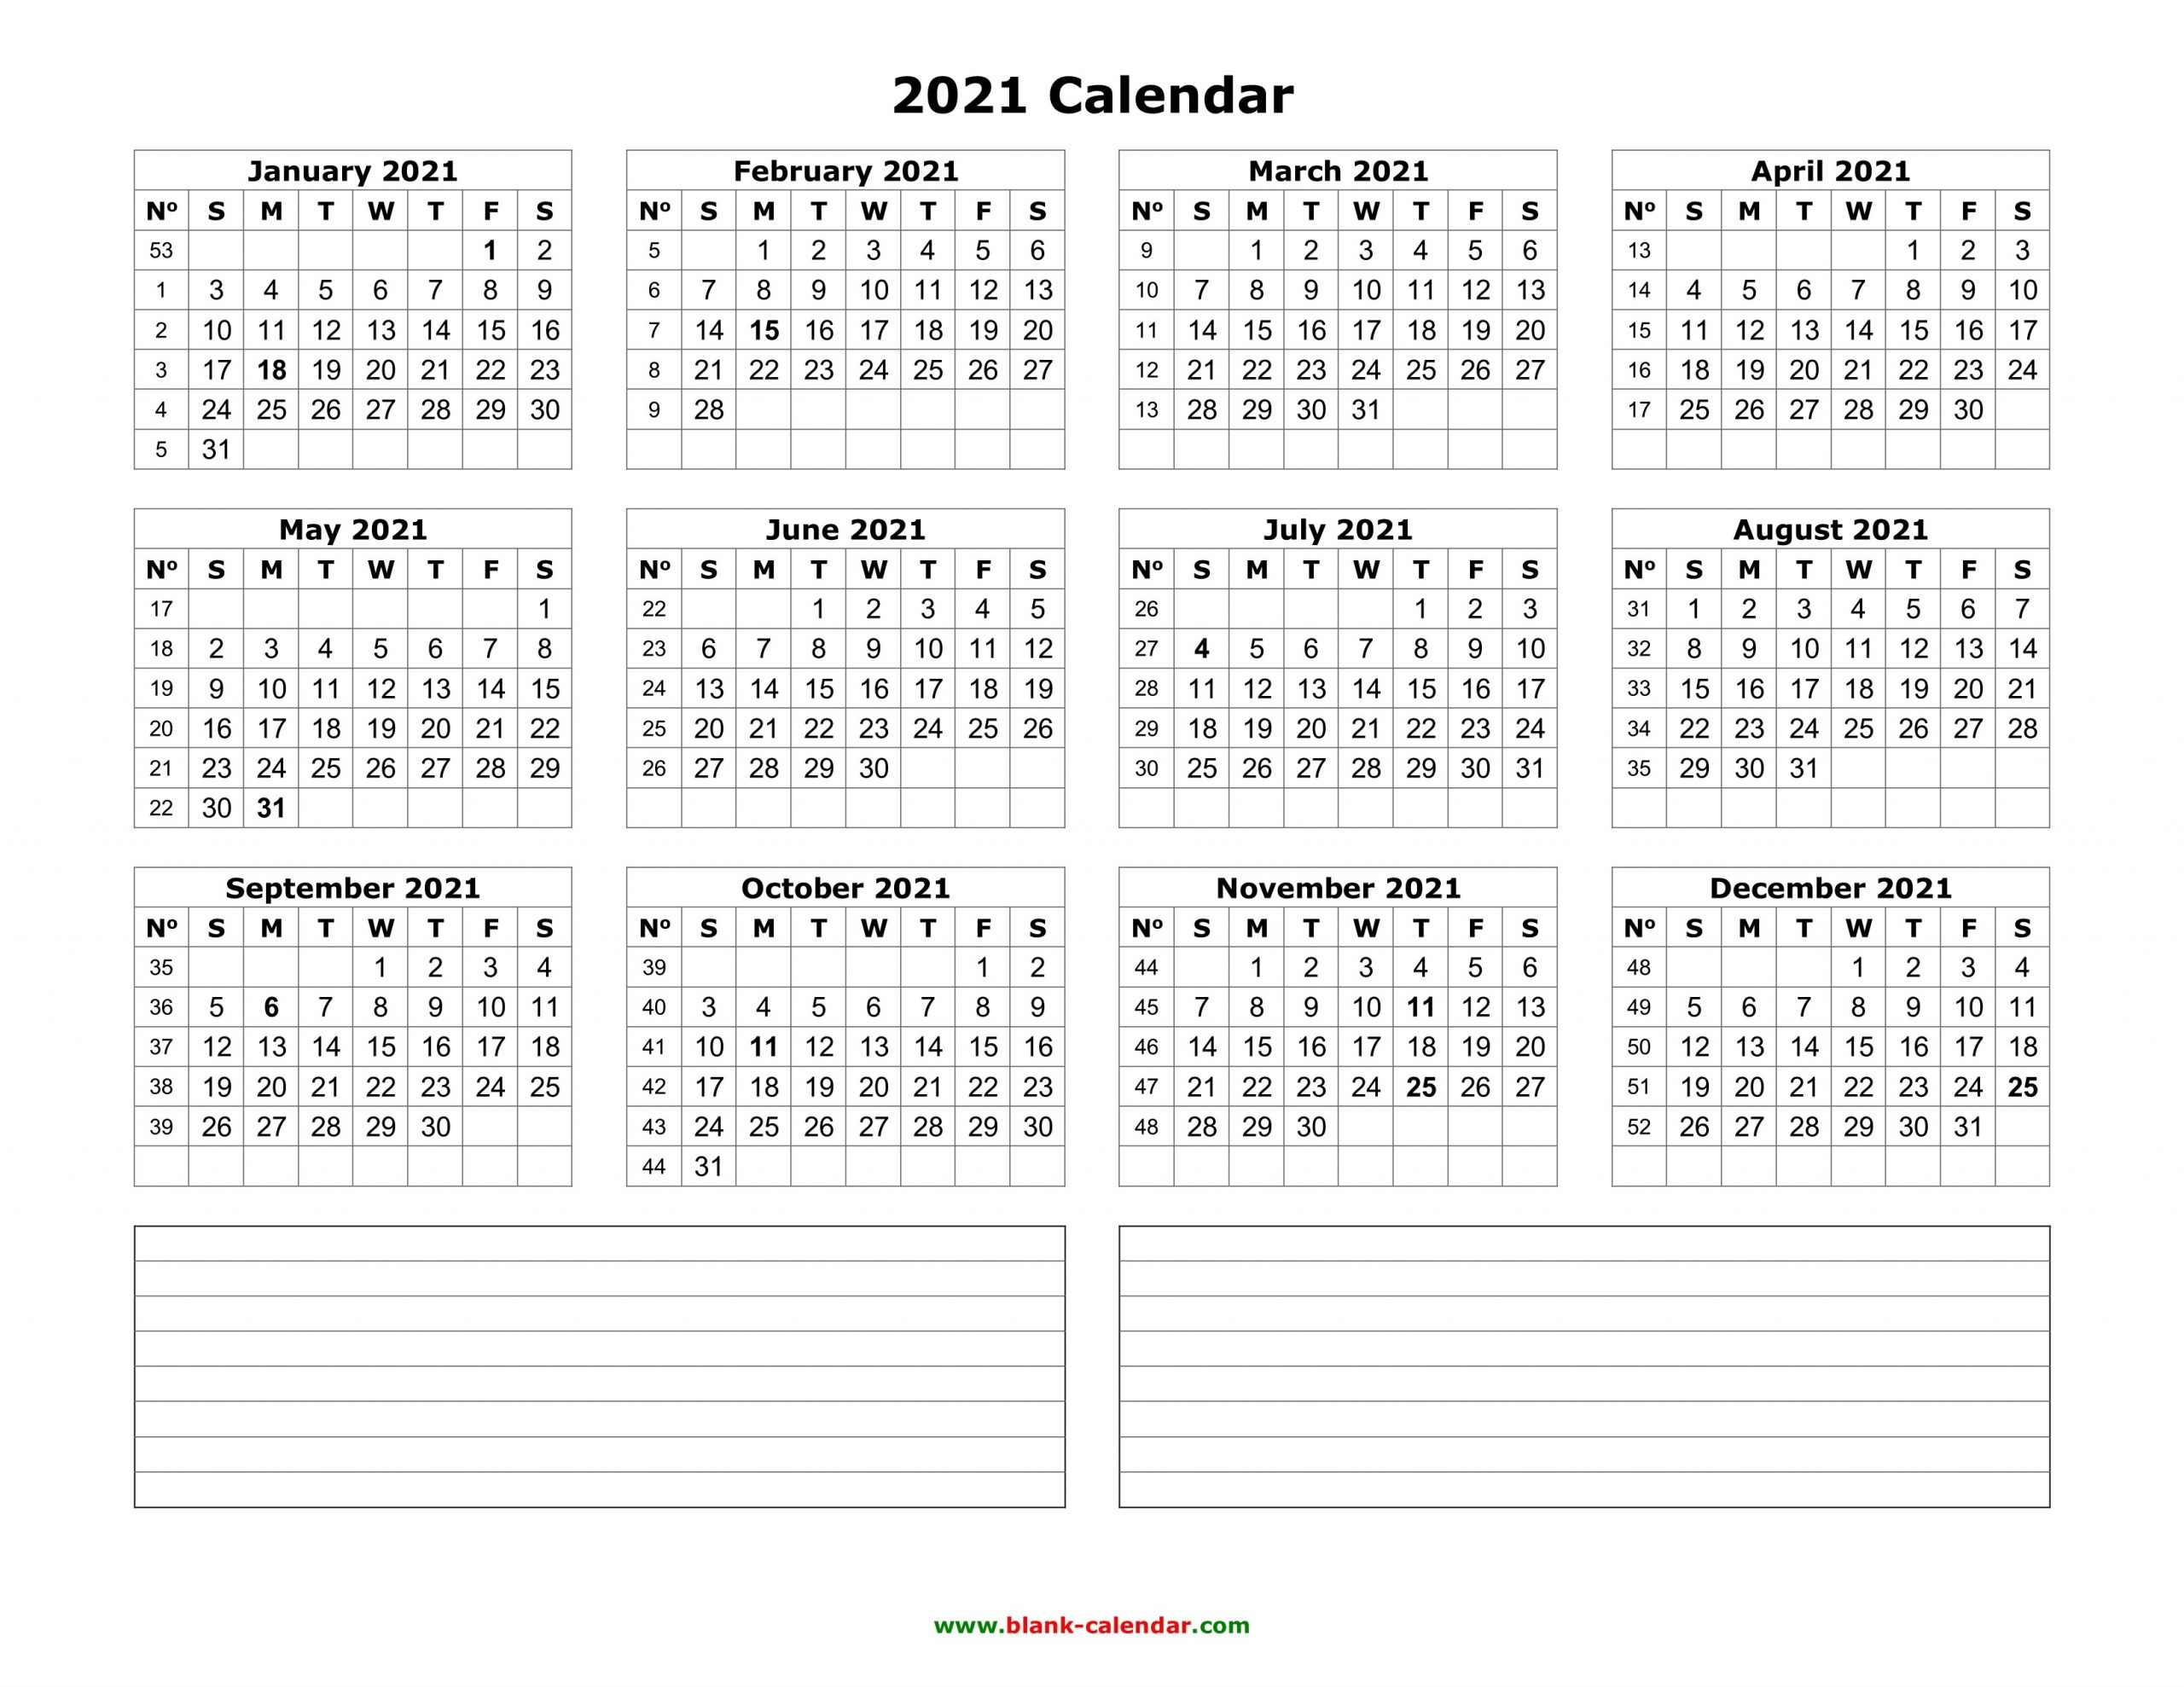 Yearly Calendar 2021   Free Download And Print-Print Free 2021 Calendar Without Downloading